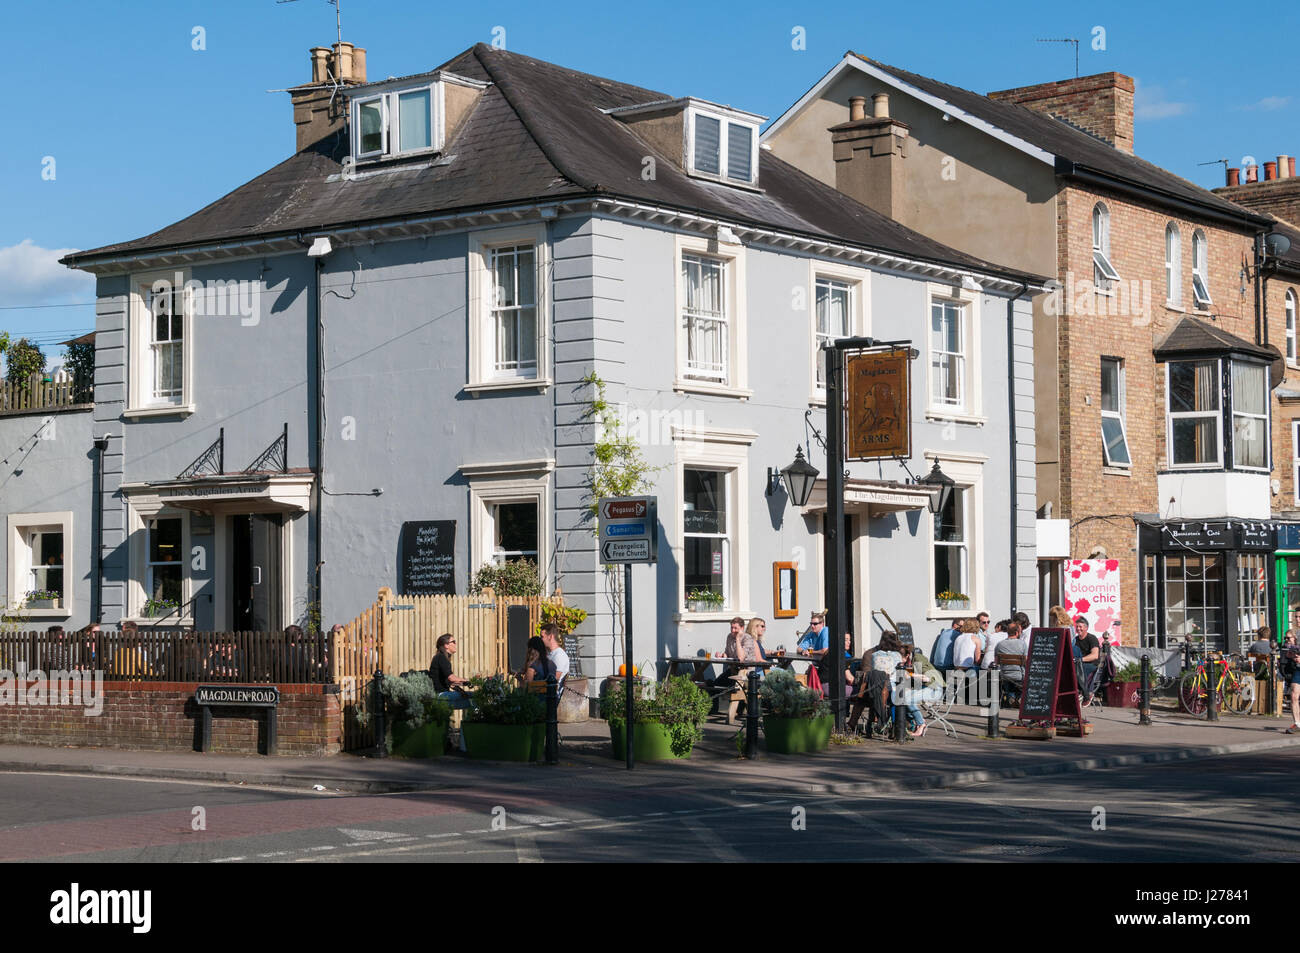 The Magdalen Arms pub, Iffley Road, Oxford, United Kingdom Stock Photo